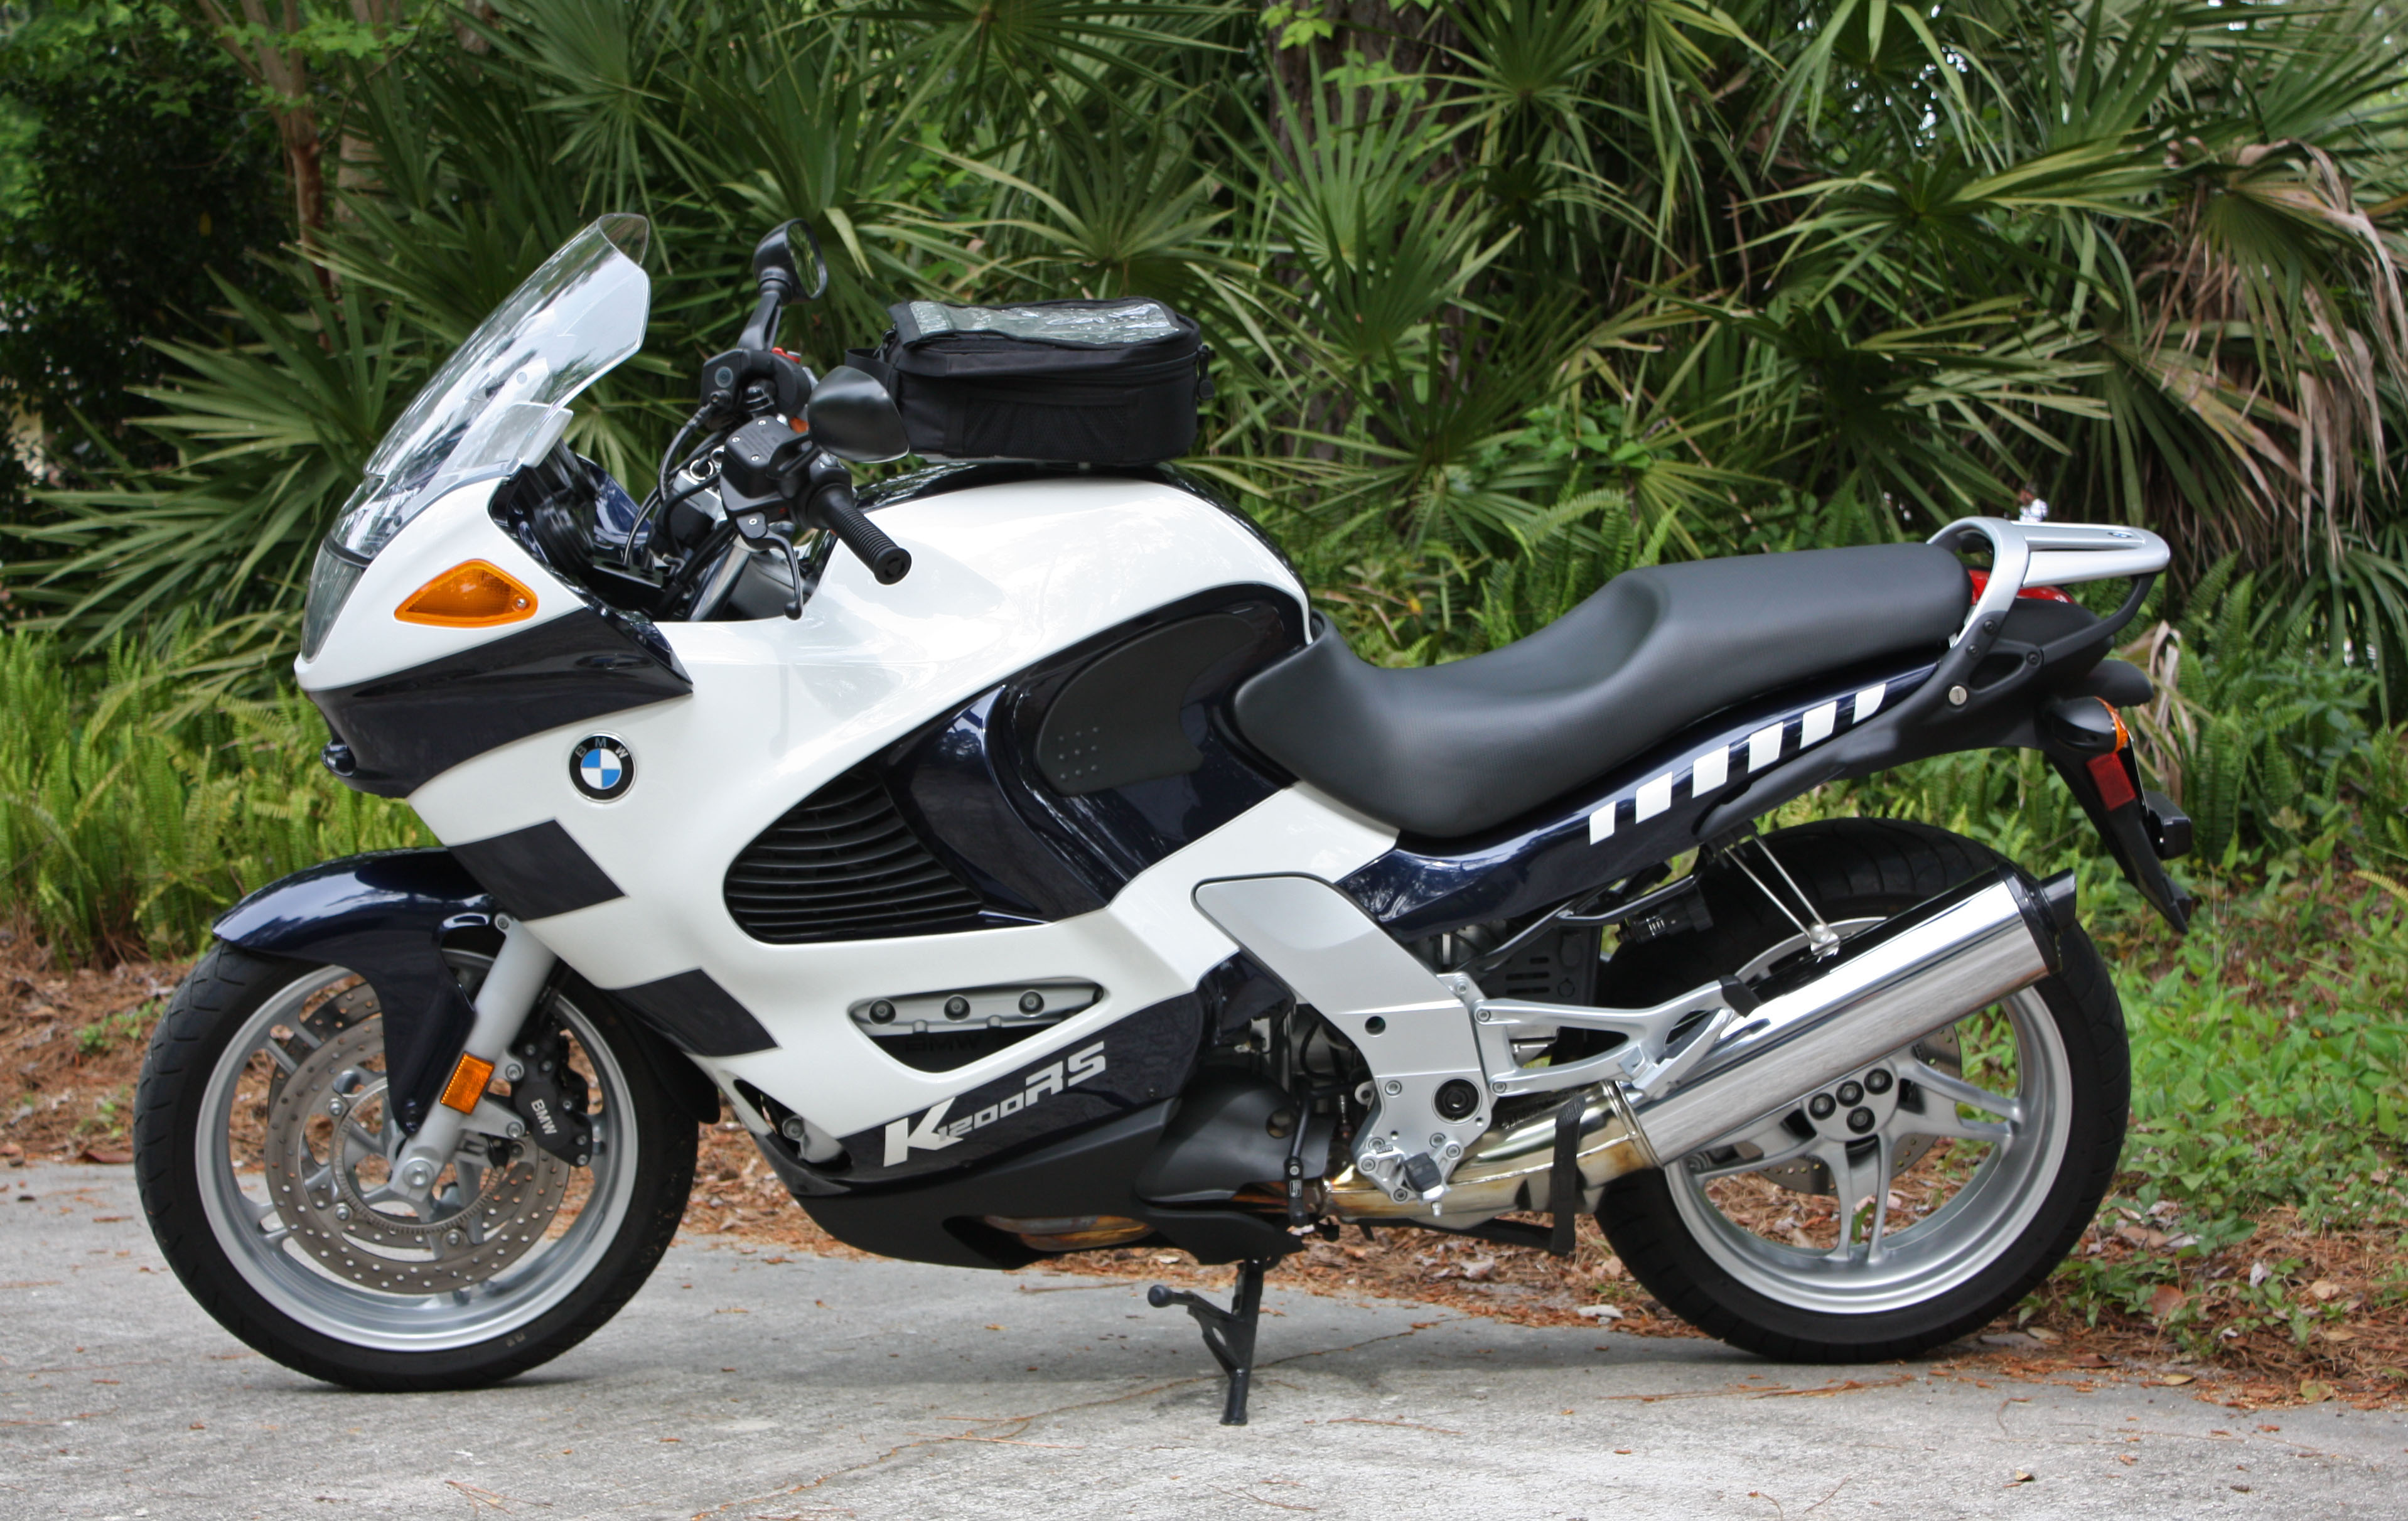 BMW K1200RS 1999 images #43957